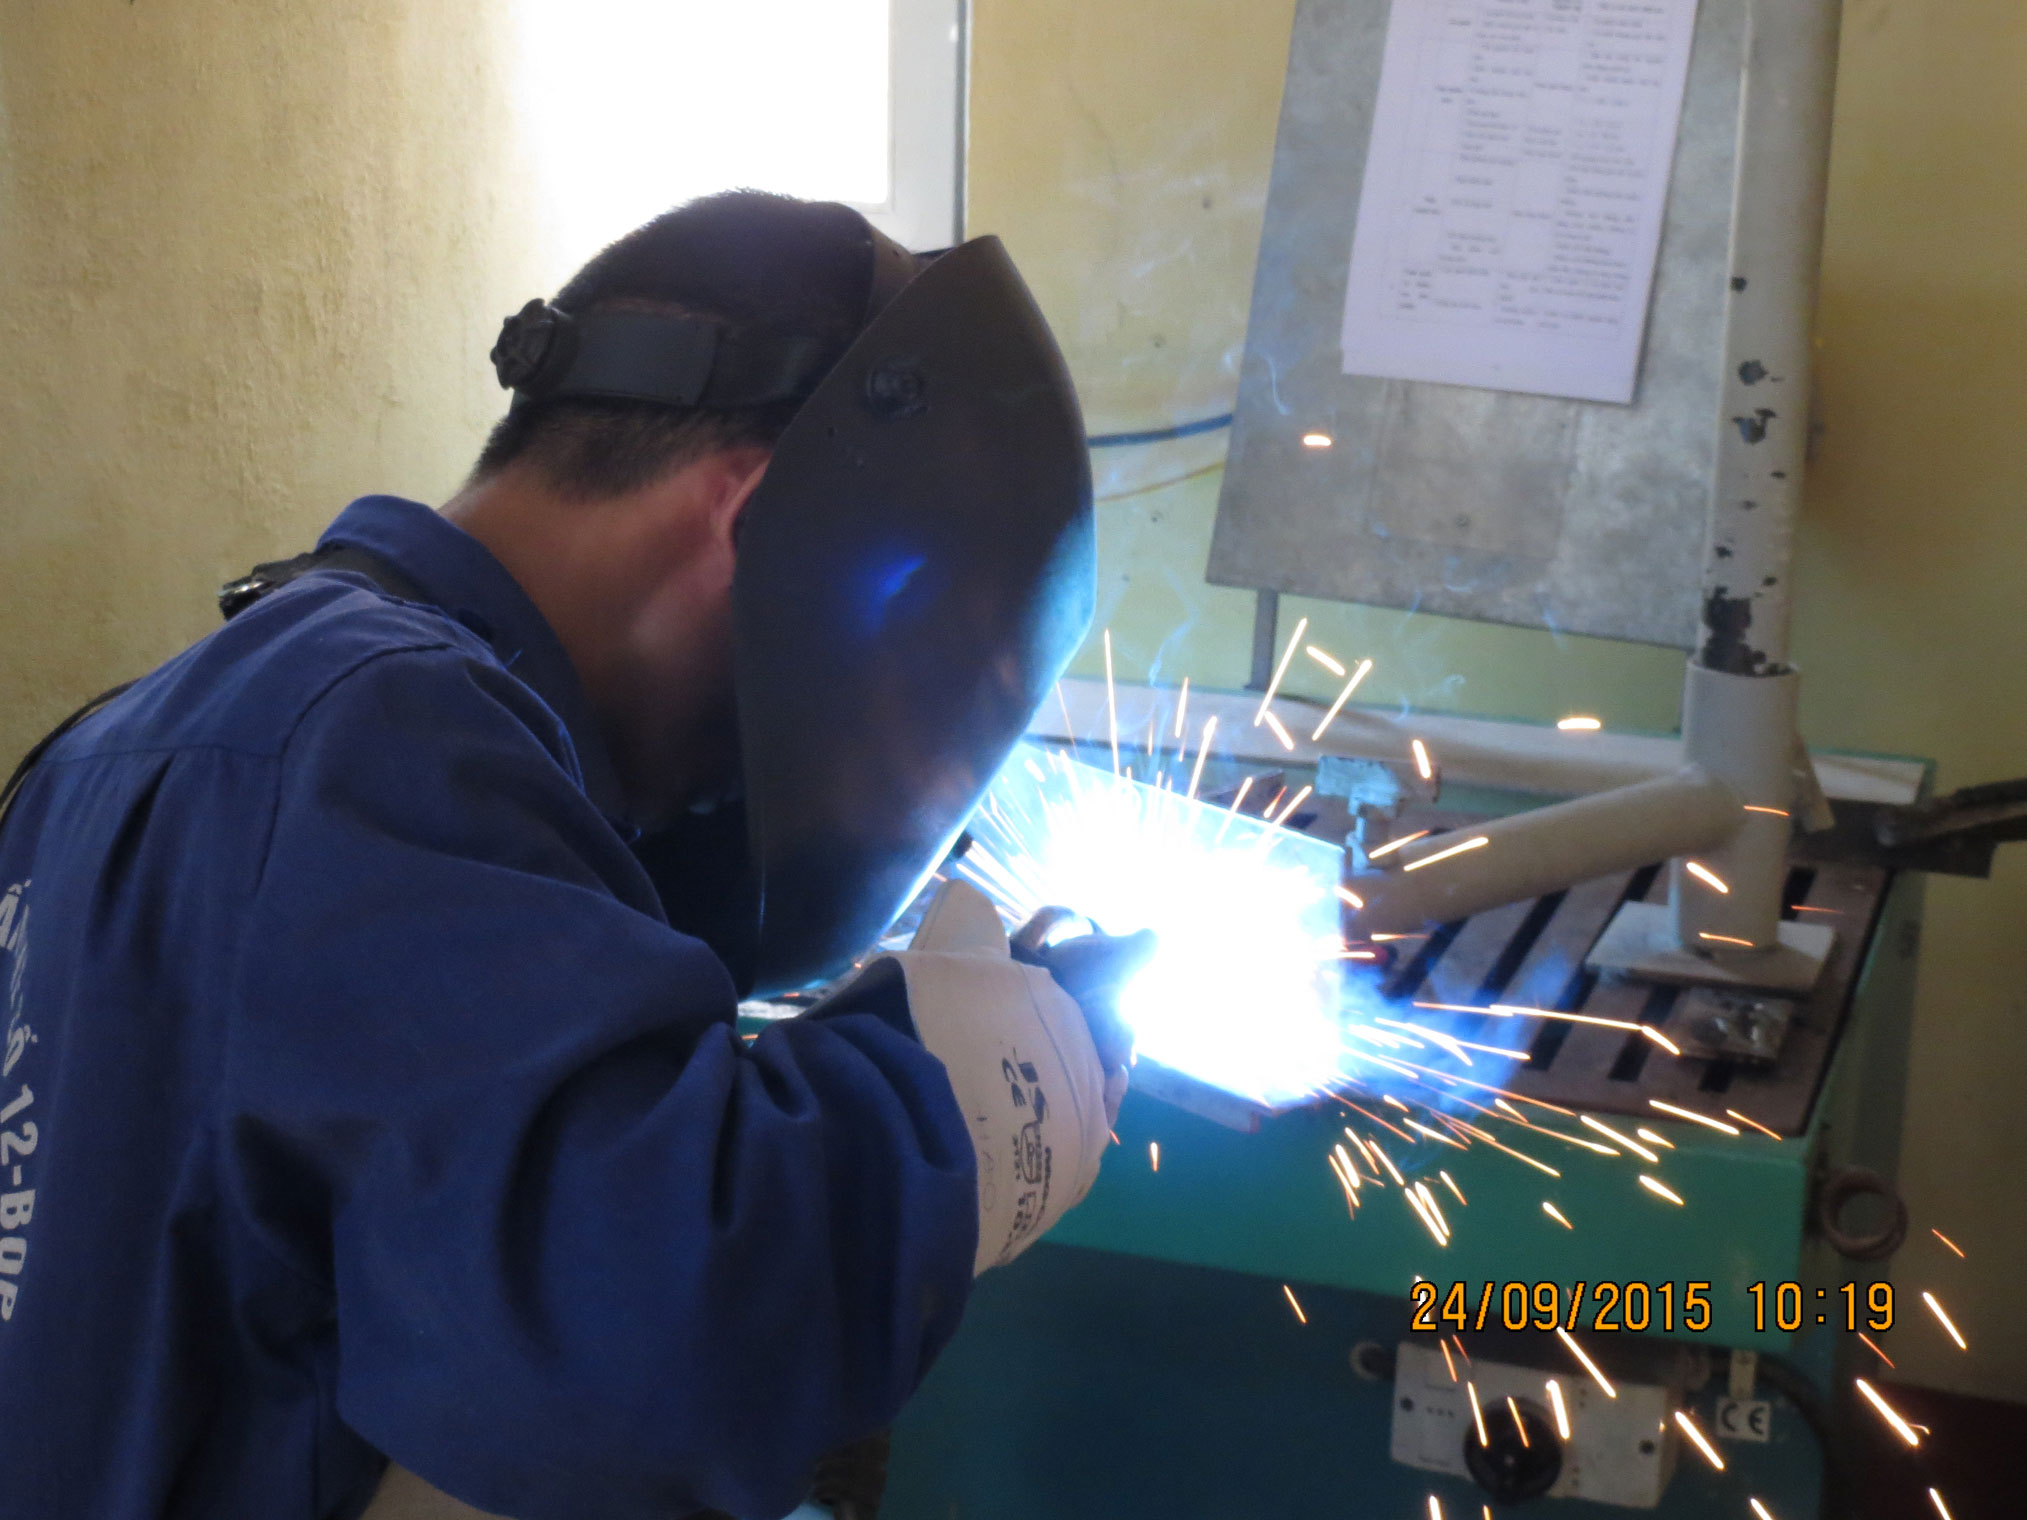 Practice session of Welding